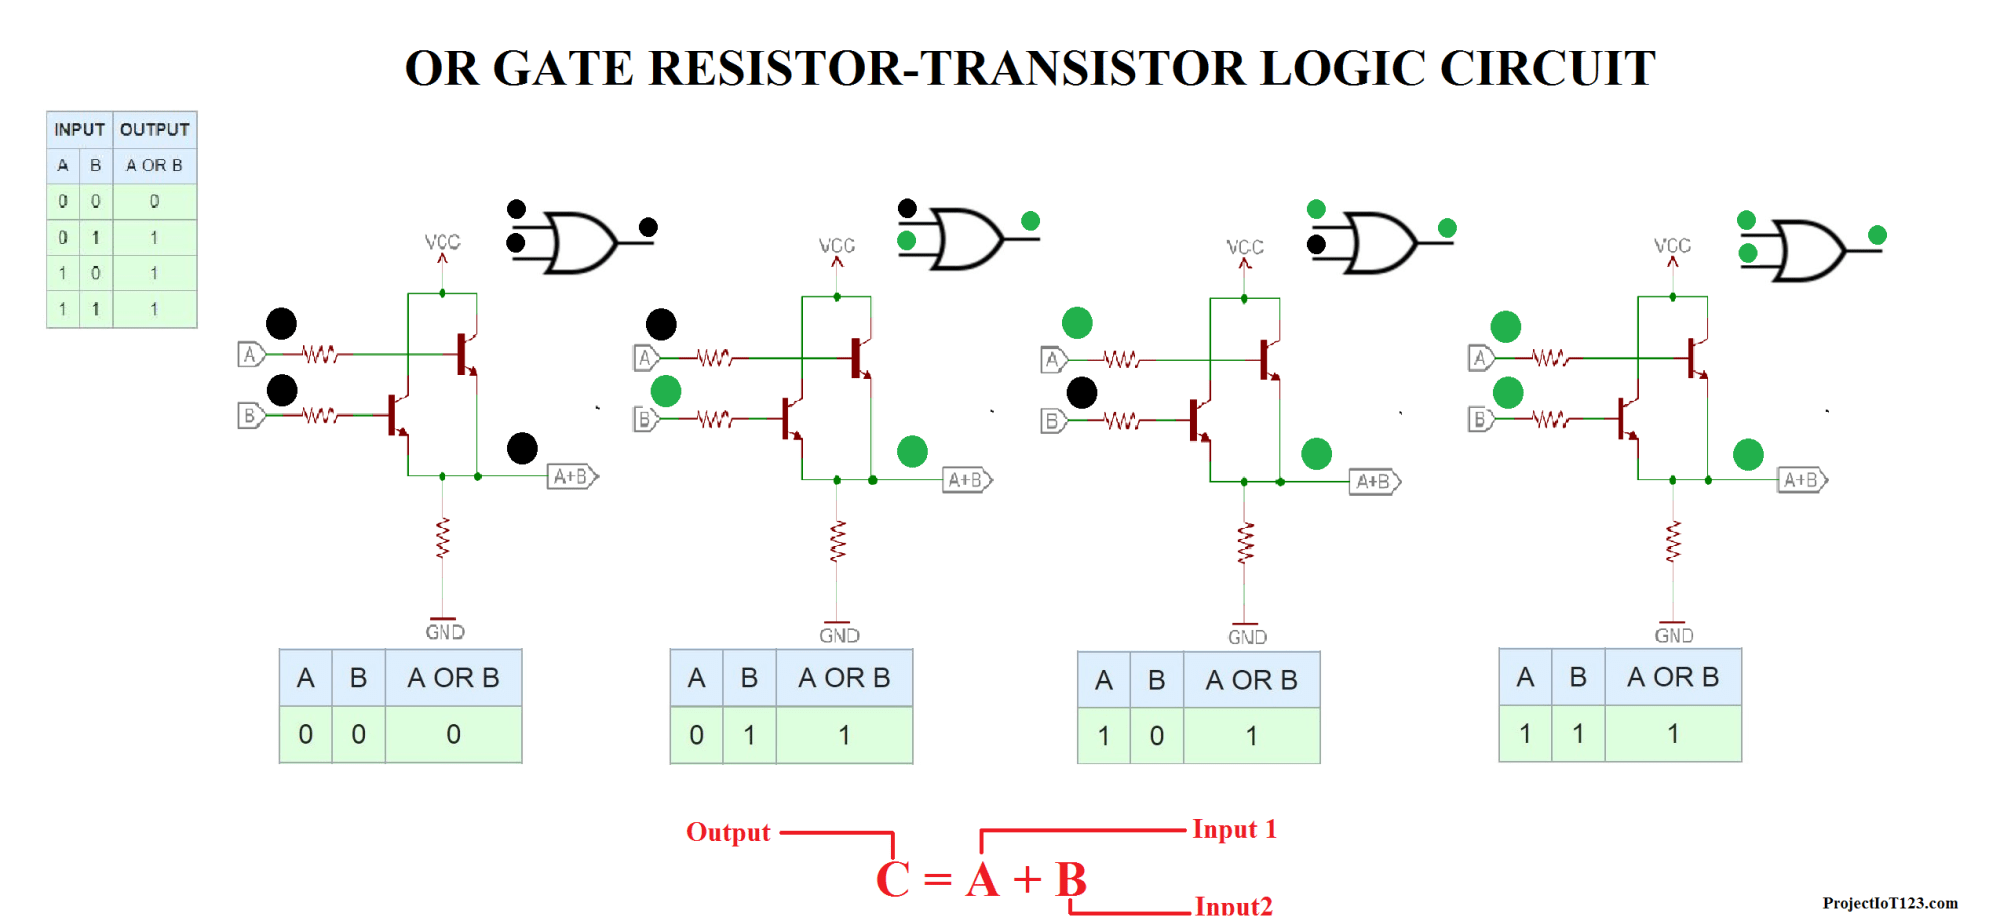 hight resolution of the inputs of the or gate are connected to base of the transistors and the output is connected to the emitter as shown in the figure when either of the